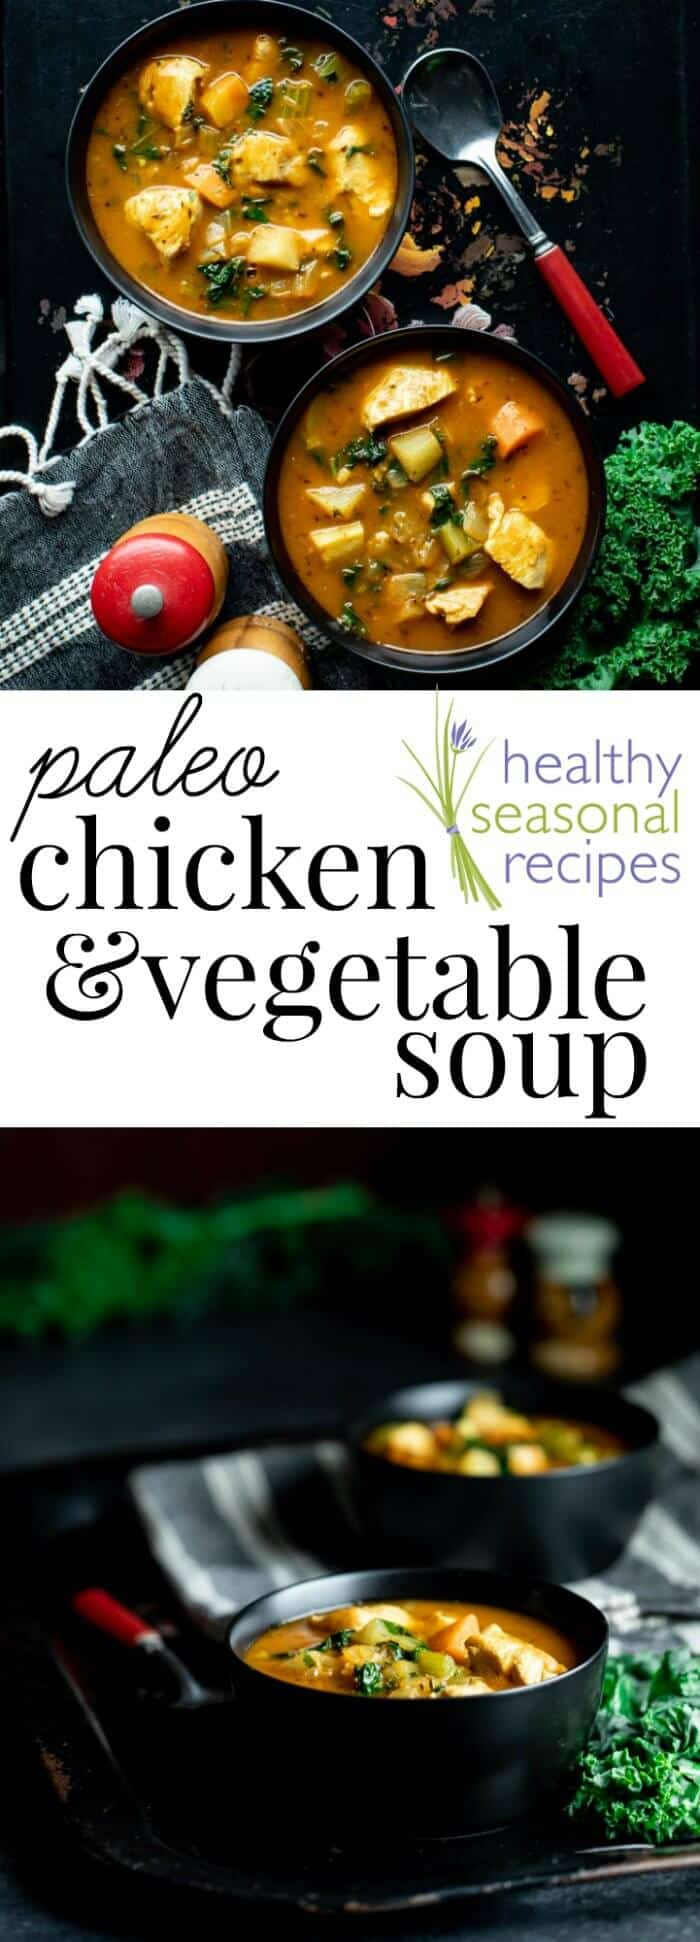 My whole family loved this hearty Chicken and Vegetable Soup. It is grain free and dairy free, which means it's Paleo friendly. Leftovers freeze really well, and also heat-up for lunches at the office. Each 2 cup serving is under 300 calories, and has 25 grams of protein! #paleo #chickensoup #chickenvegetablesoup #grainfree #glutenfree #wheatfree #dairyfree #highprotein #soup #lunch #makeahead #freezermeal #kidfriendly #parsnips #turnips #kale #healthy #healthyseasonal